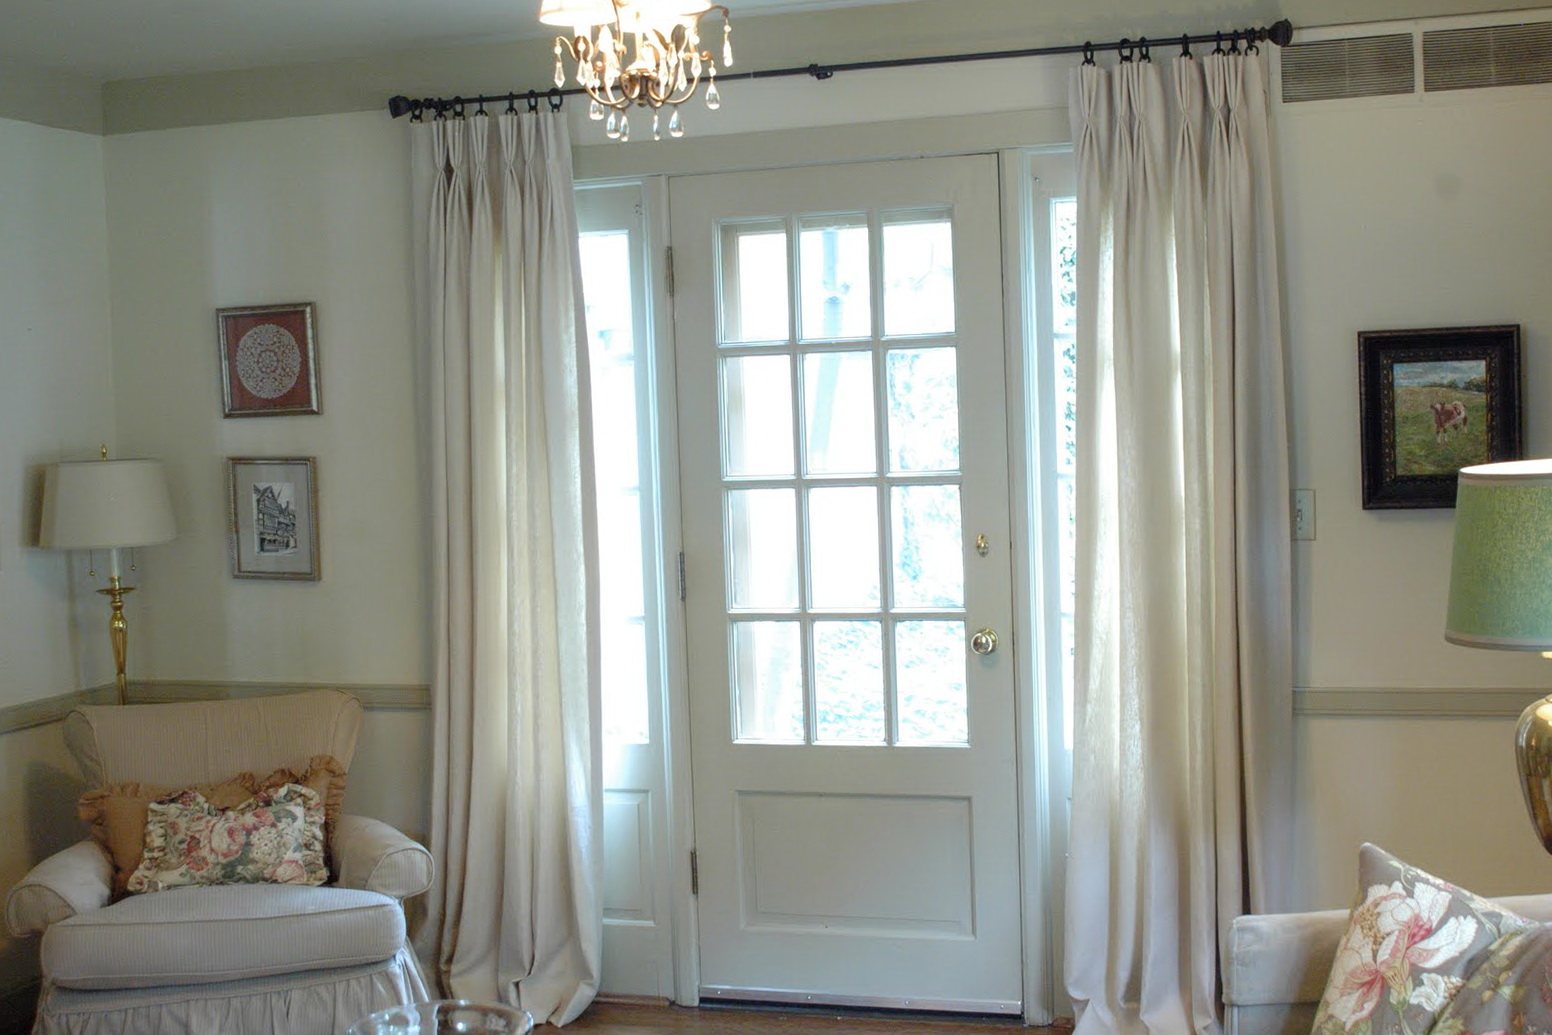 Hanging Curtains From Ceiling To Floor  Home Design Ideas